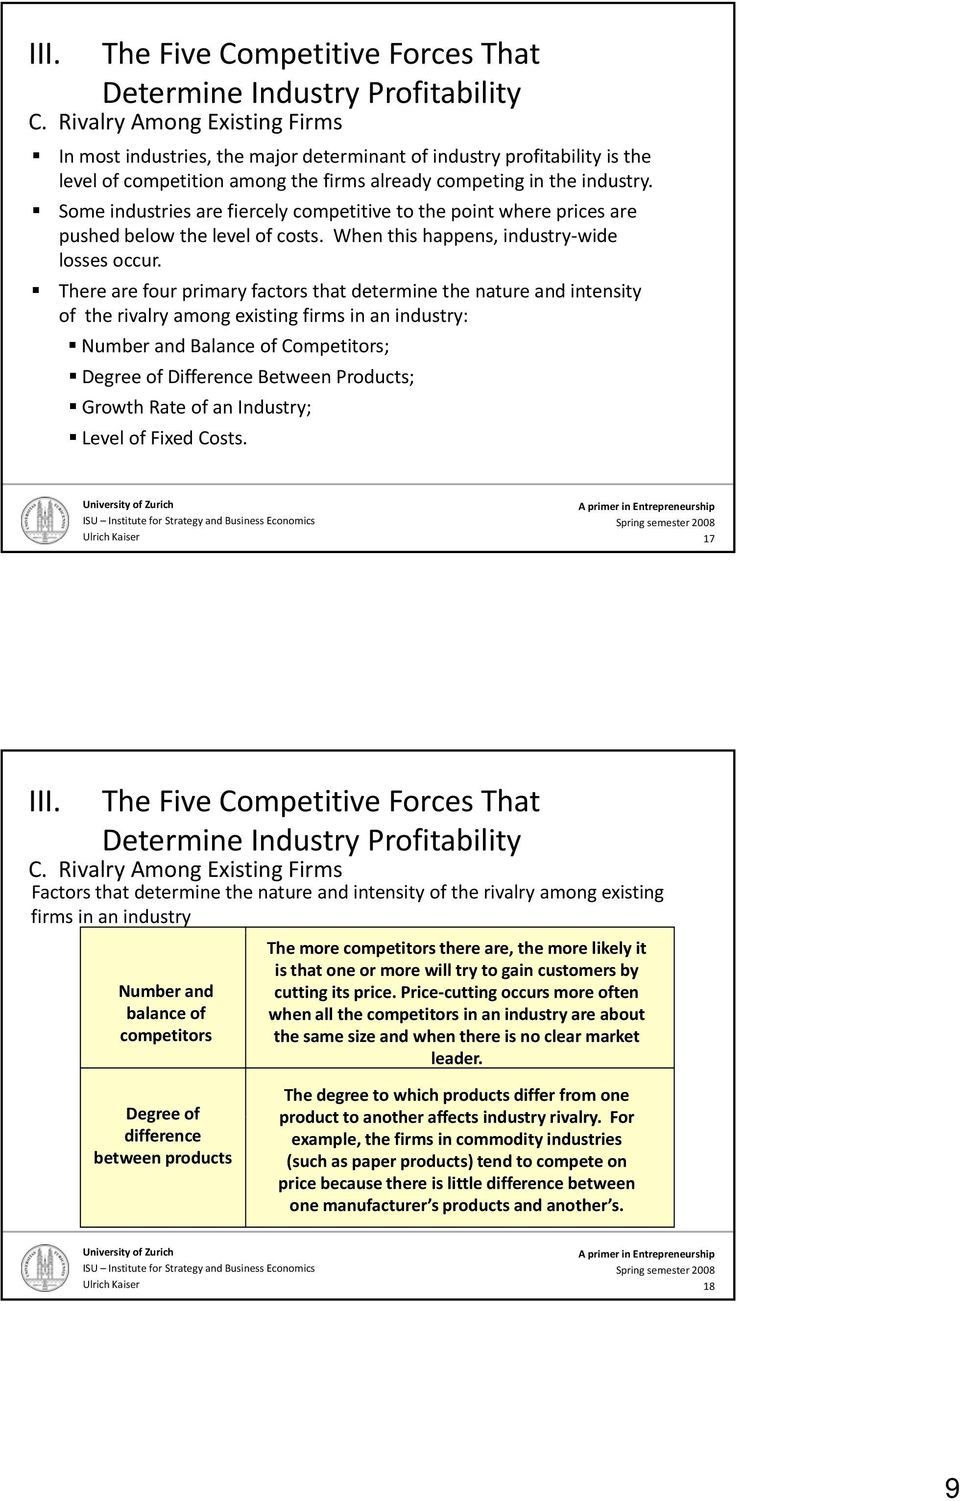 There are four primary factors that determine the nature and intensity of the rivalry among existing firms in an industry: Number and Balance of Competitors; Degree of Difference Between Products;